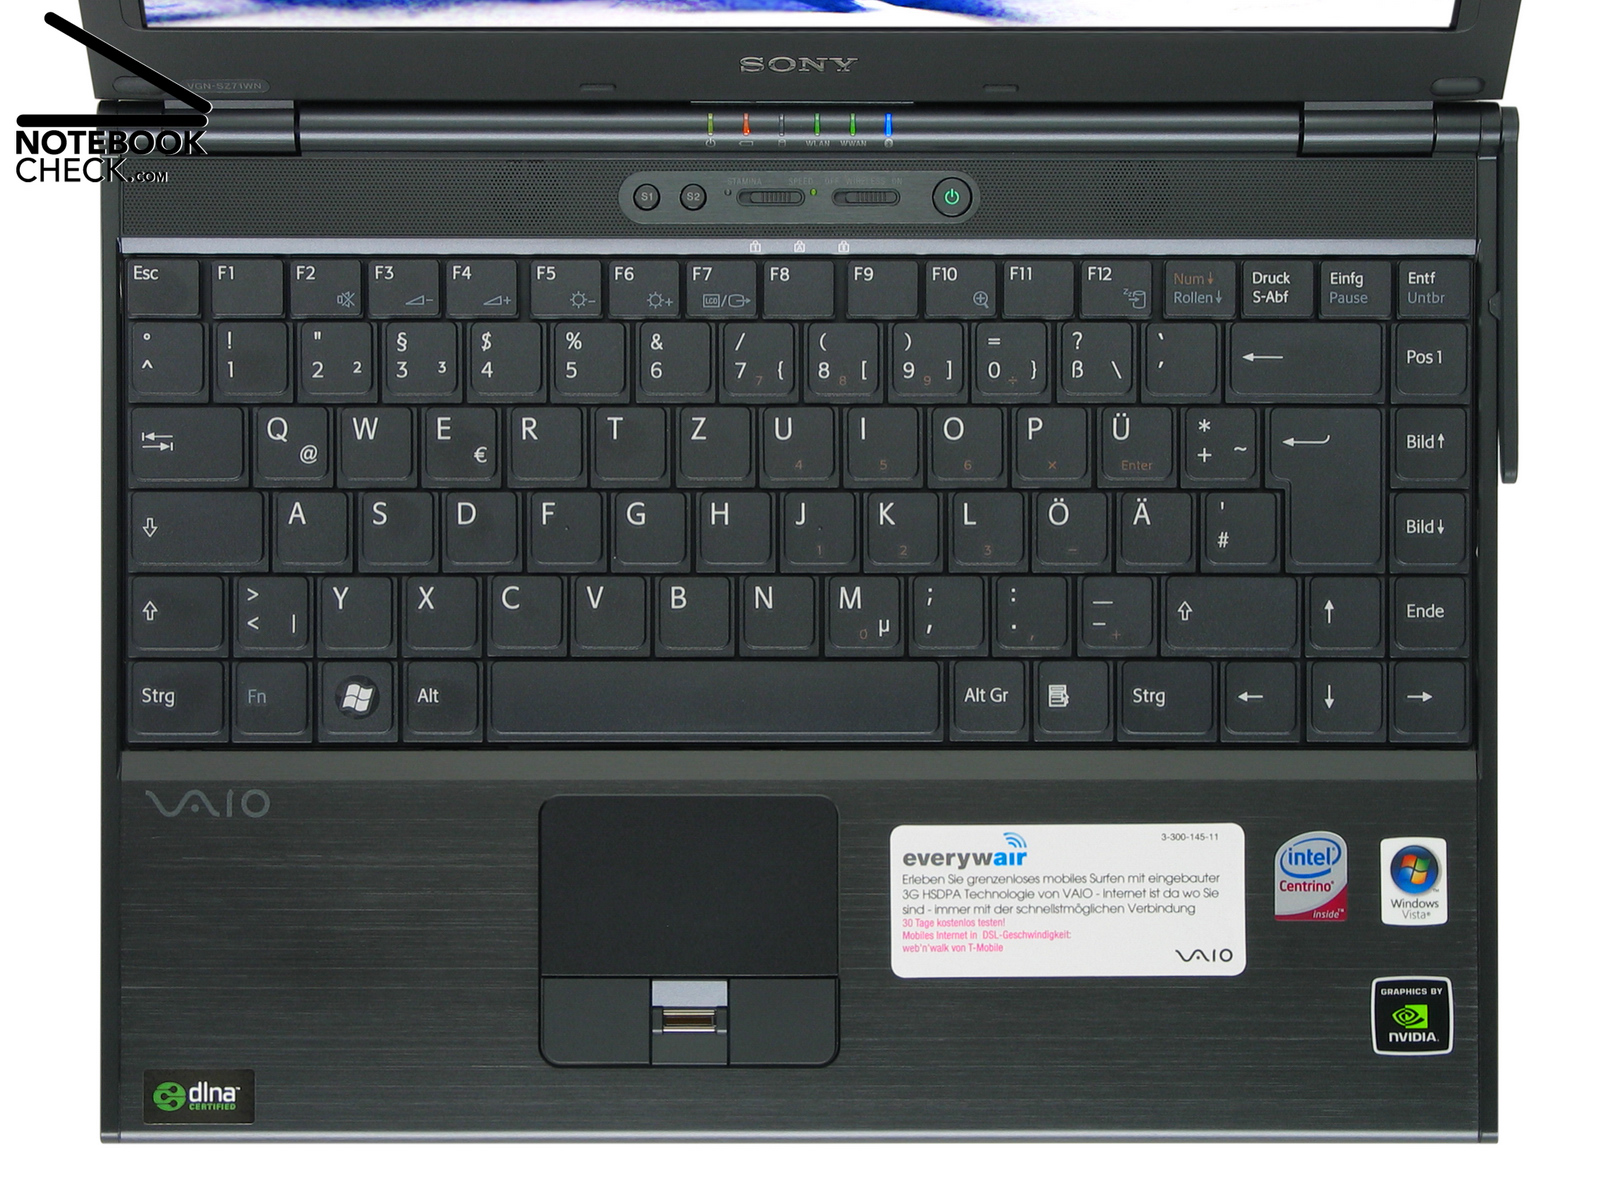 SONY VAIO VPCF13FGX MARVELL YUKON ETHERNET DRIVER FOR WINDOWS DOWNLOAD